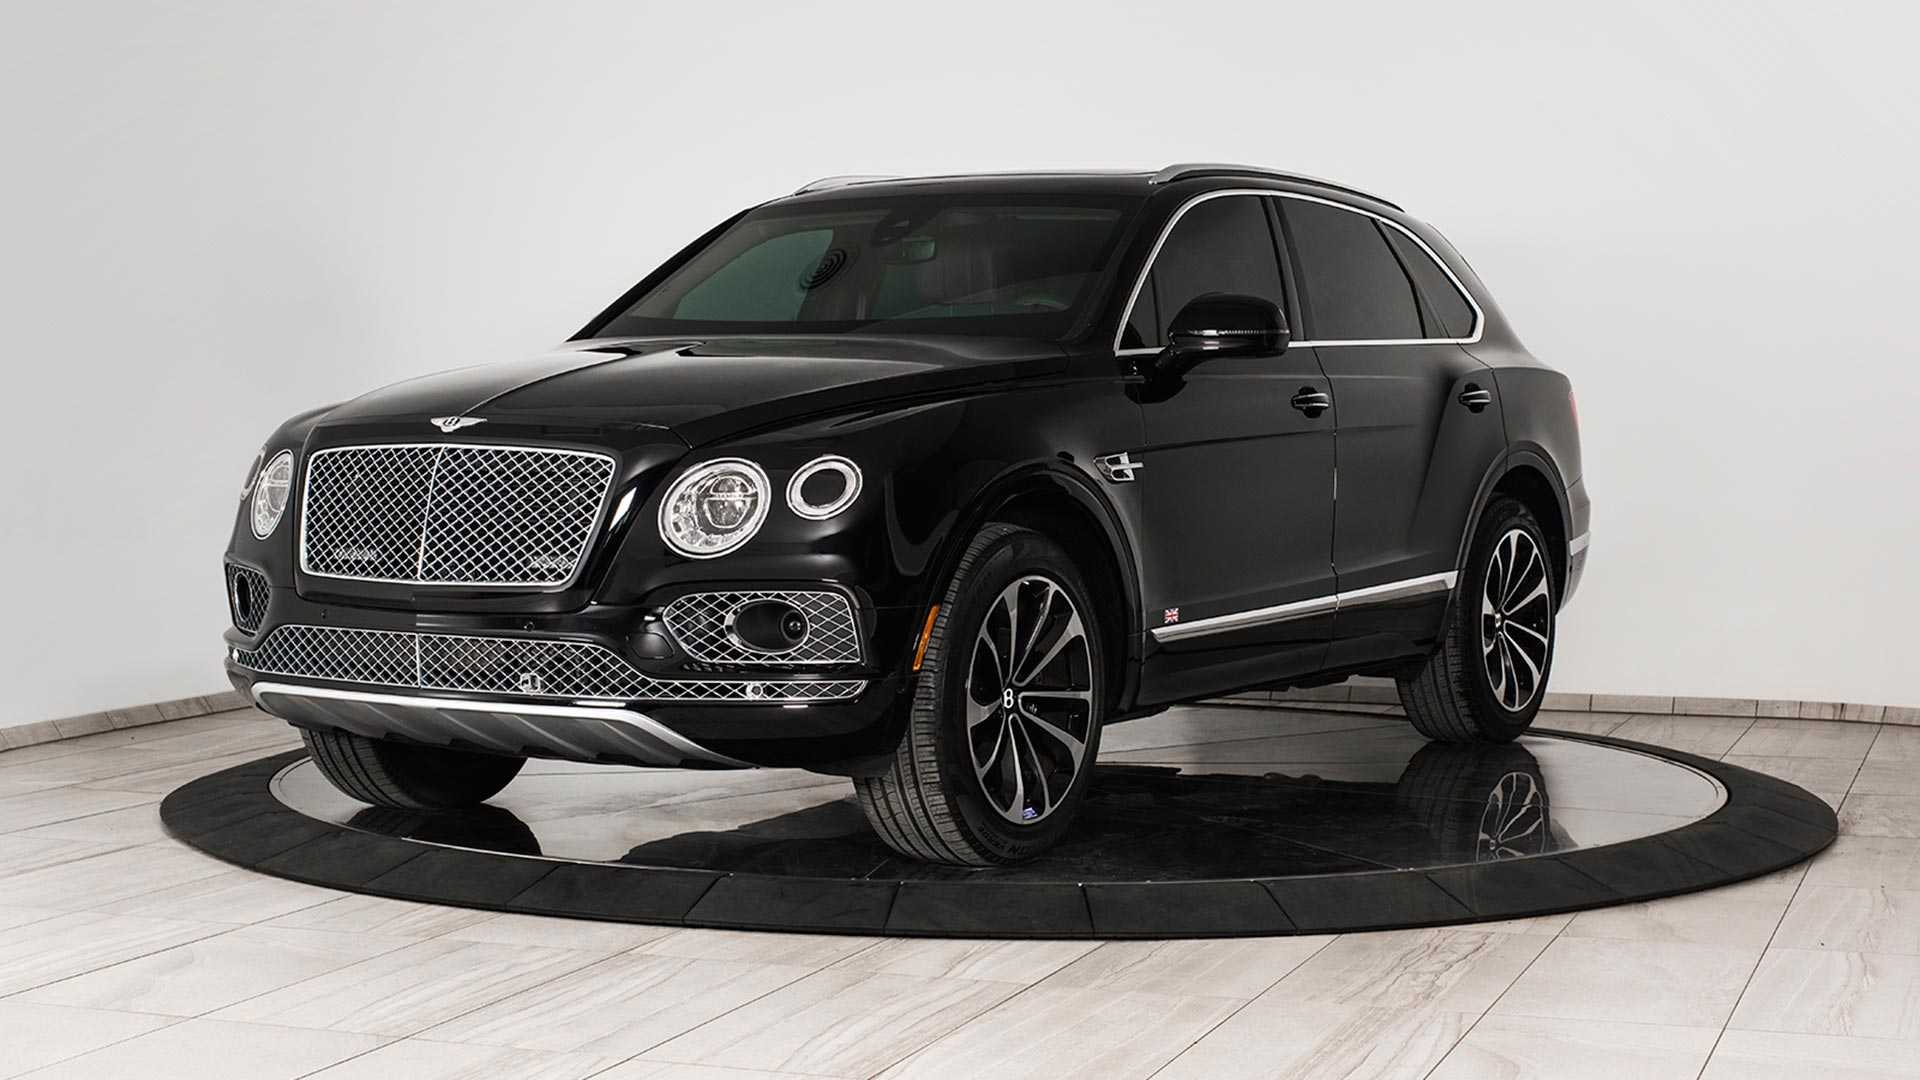 armored-bentley-bentayga-by-inkas-6